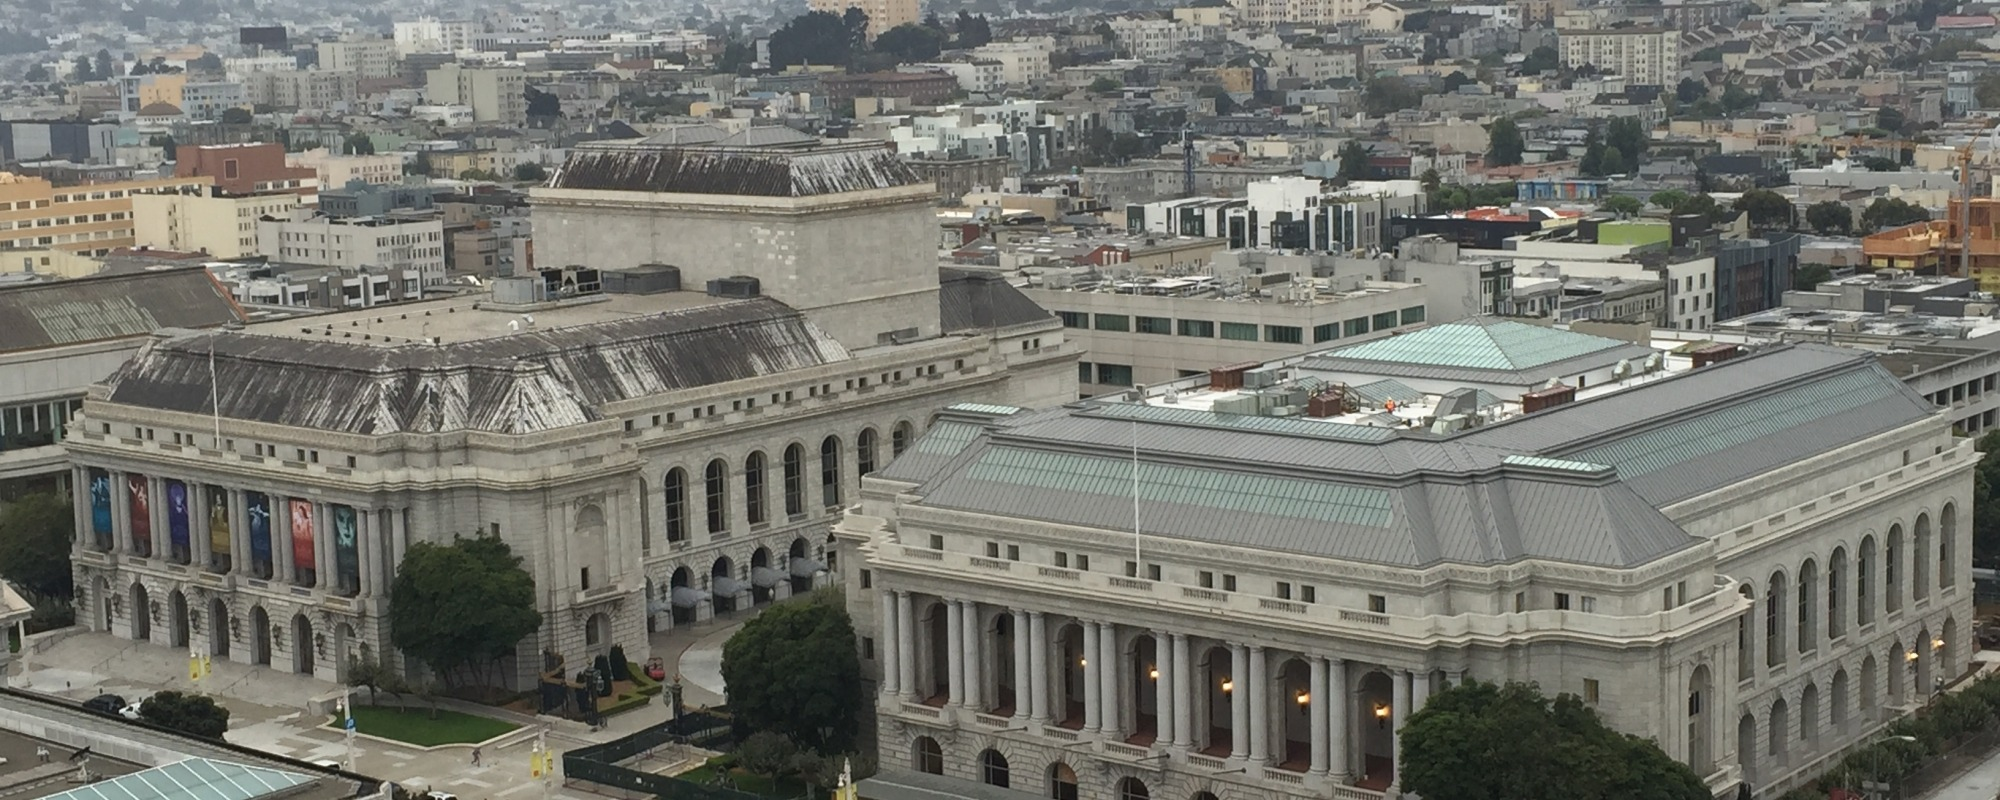 San Francisco War Memorial Veterans Building